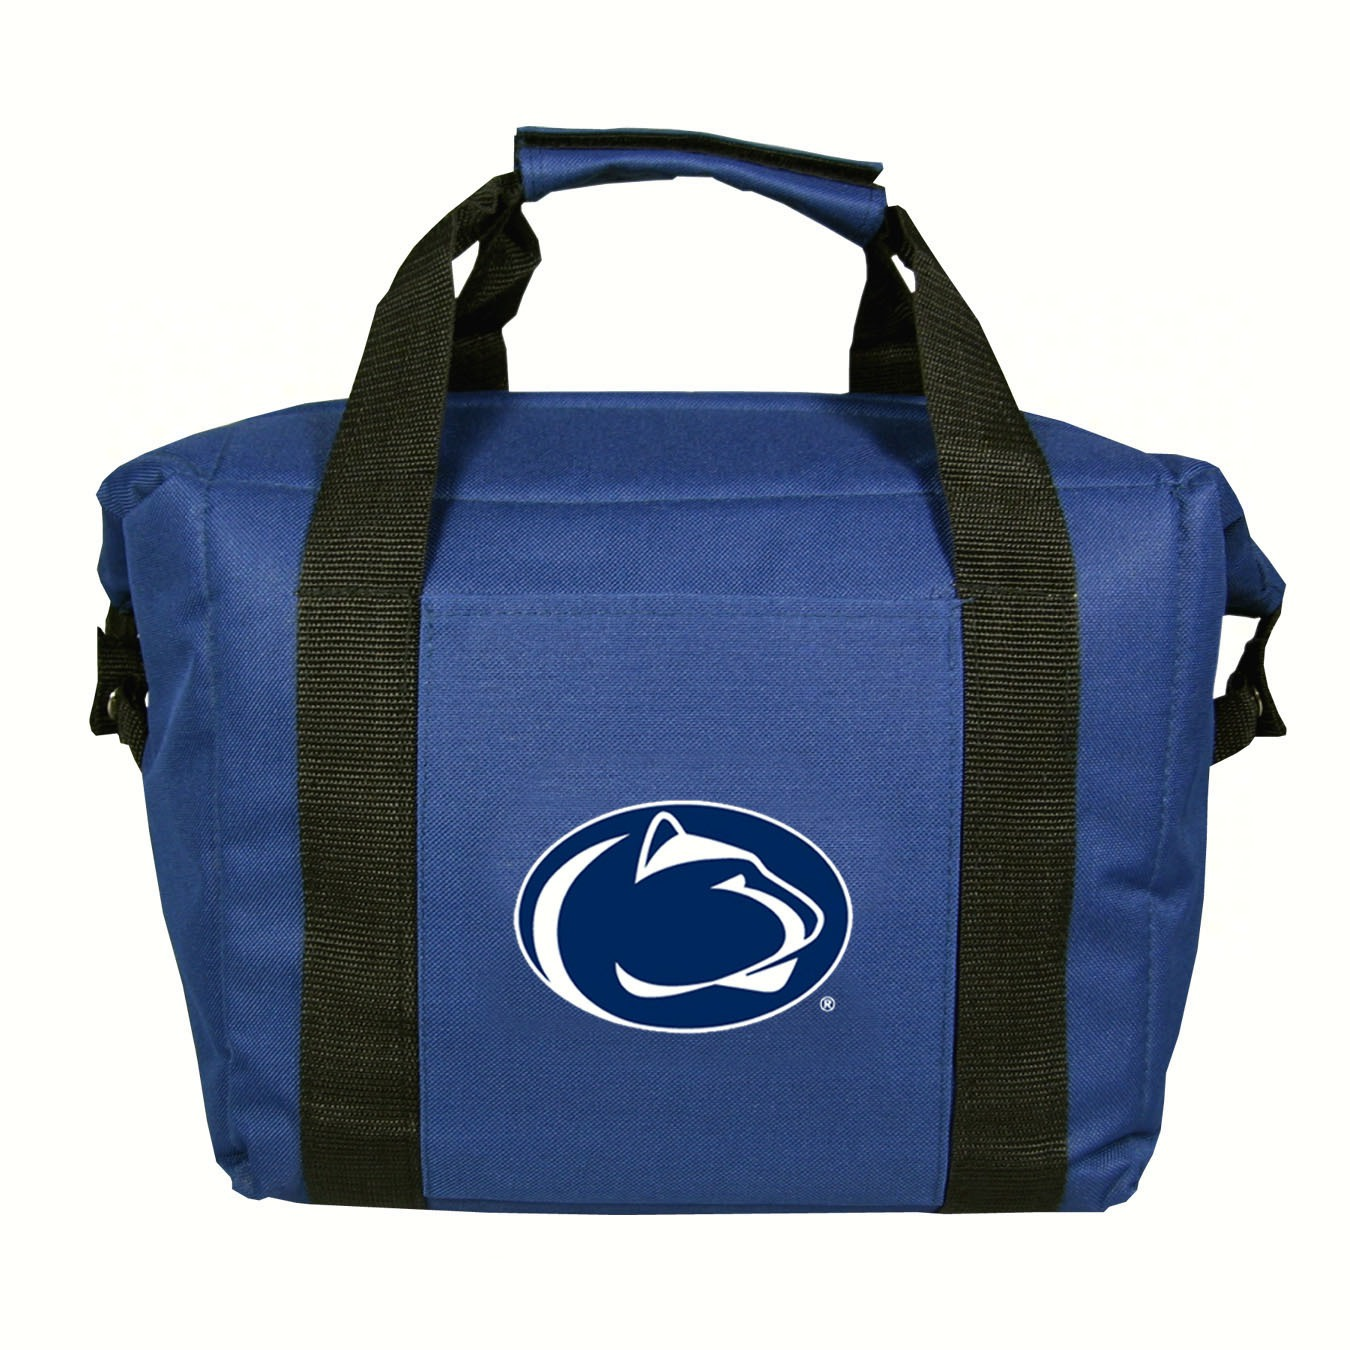 Kooler Bag - Penn State Nittany Lions (Holds a 12 pack)